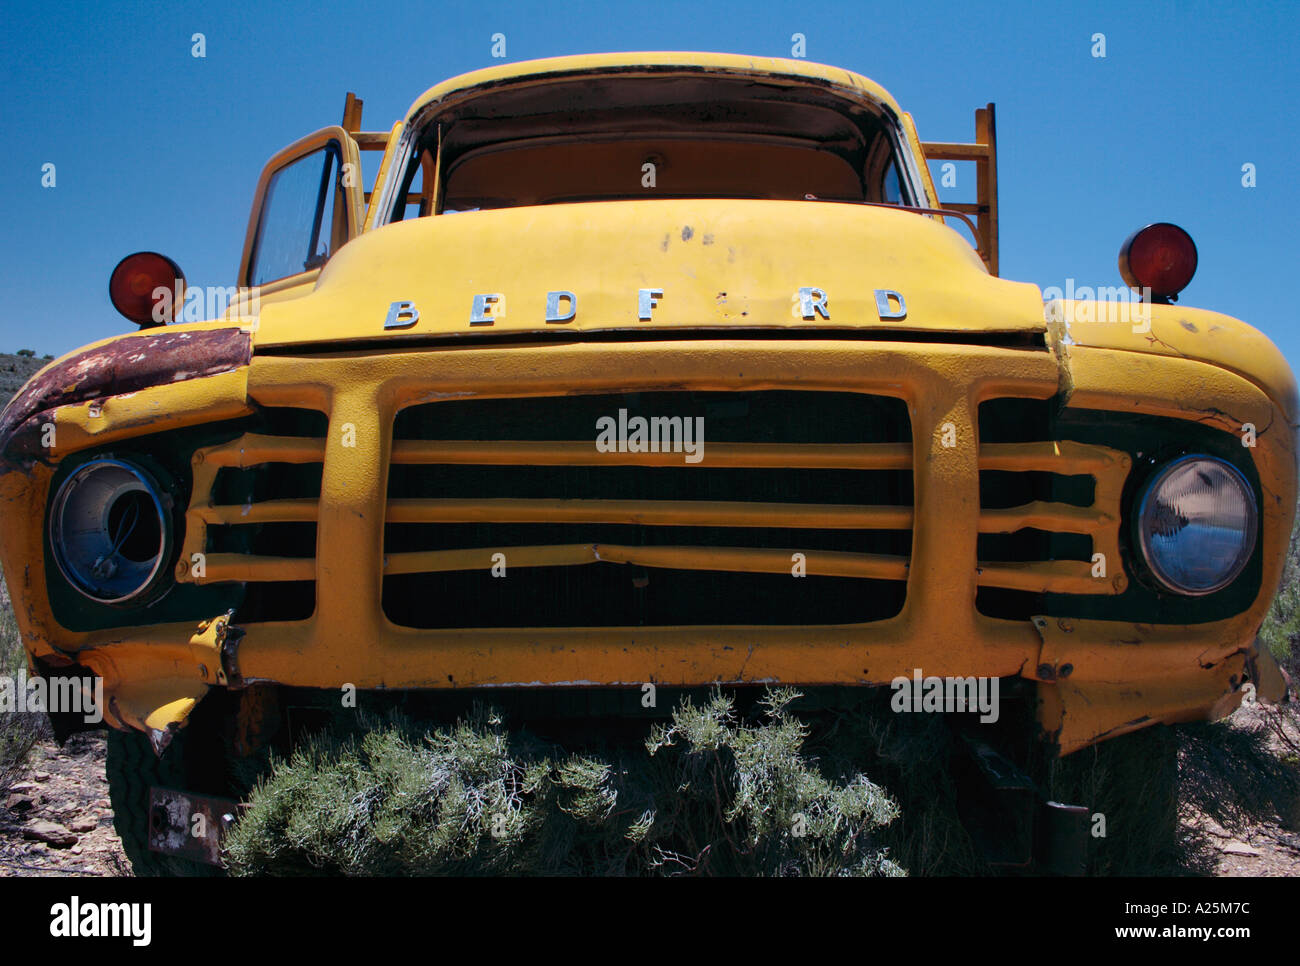 Old yellow Bedford lorry truck rusting away in desert - Stock Image